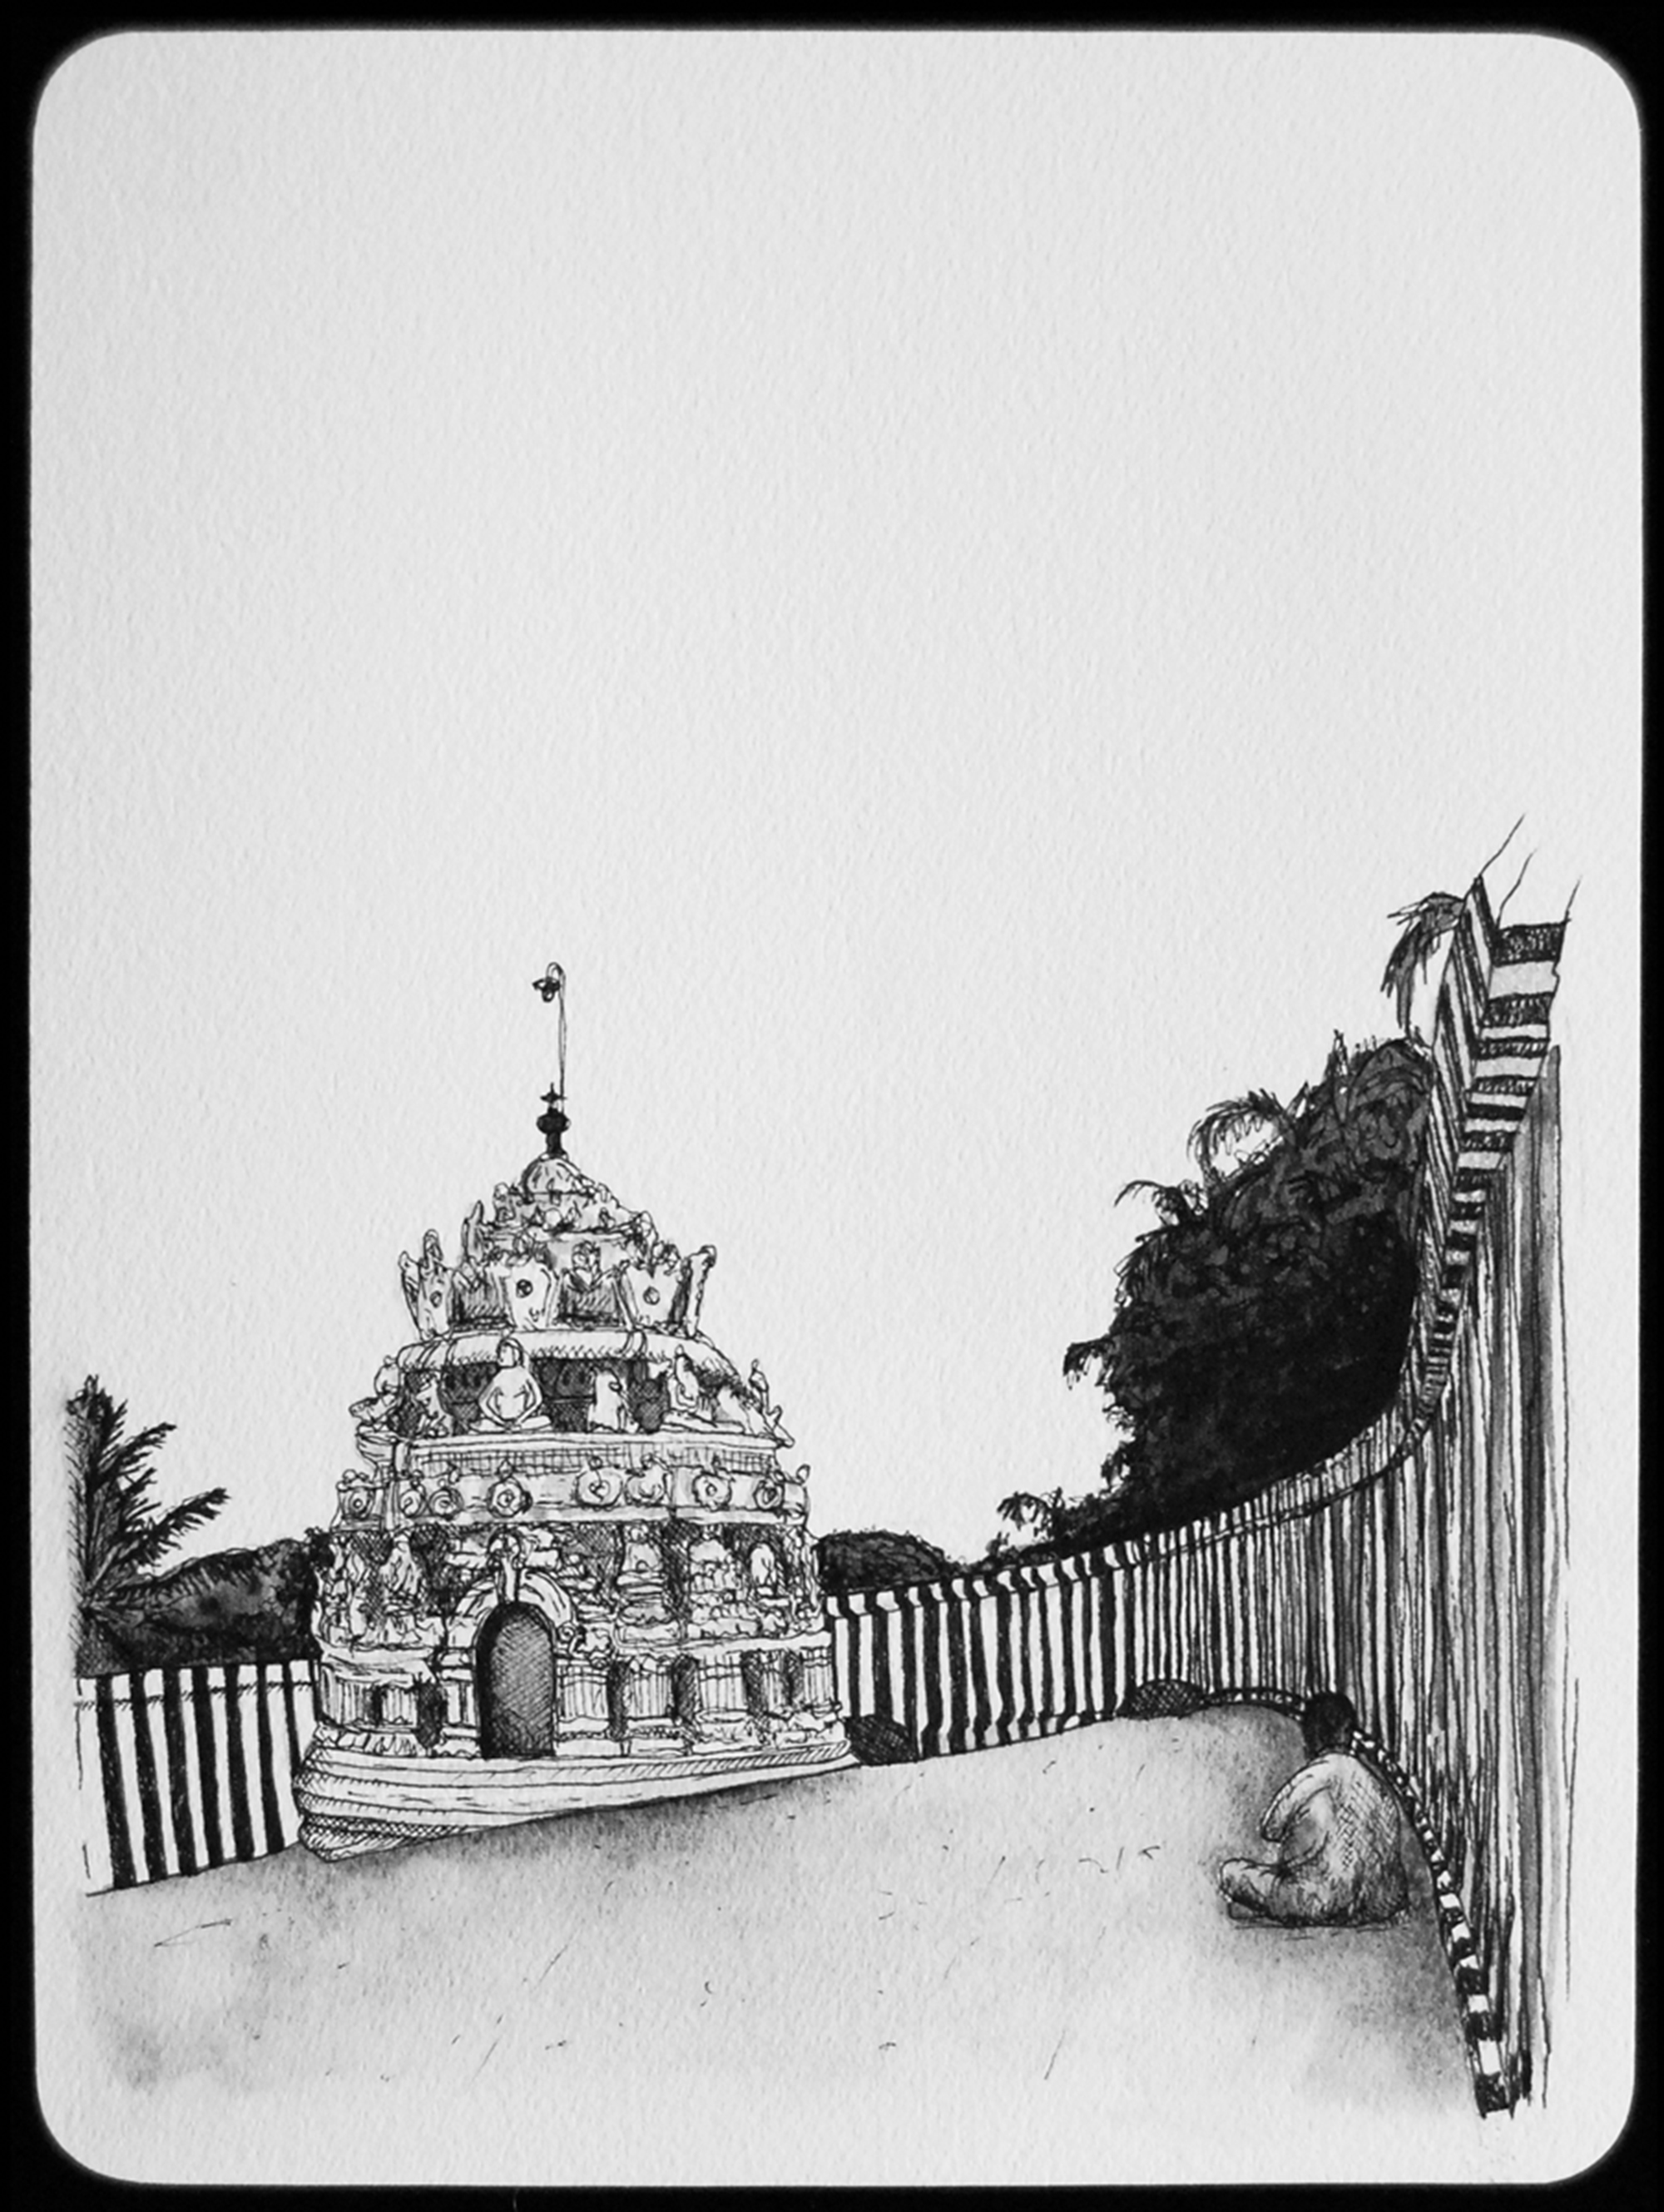 Gavi Gangadhareshwara Cave Temple - Bangalore, India, 9th century, 2011  |  11 x 8 inches  |   archival ink and gouache on paper